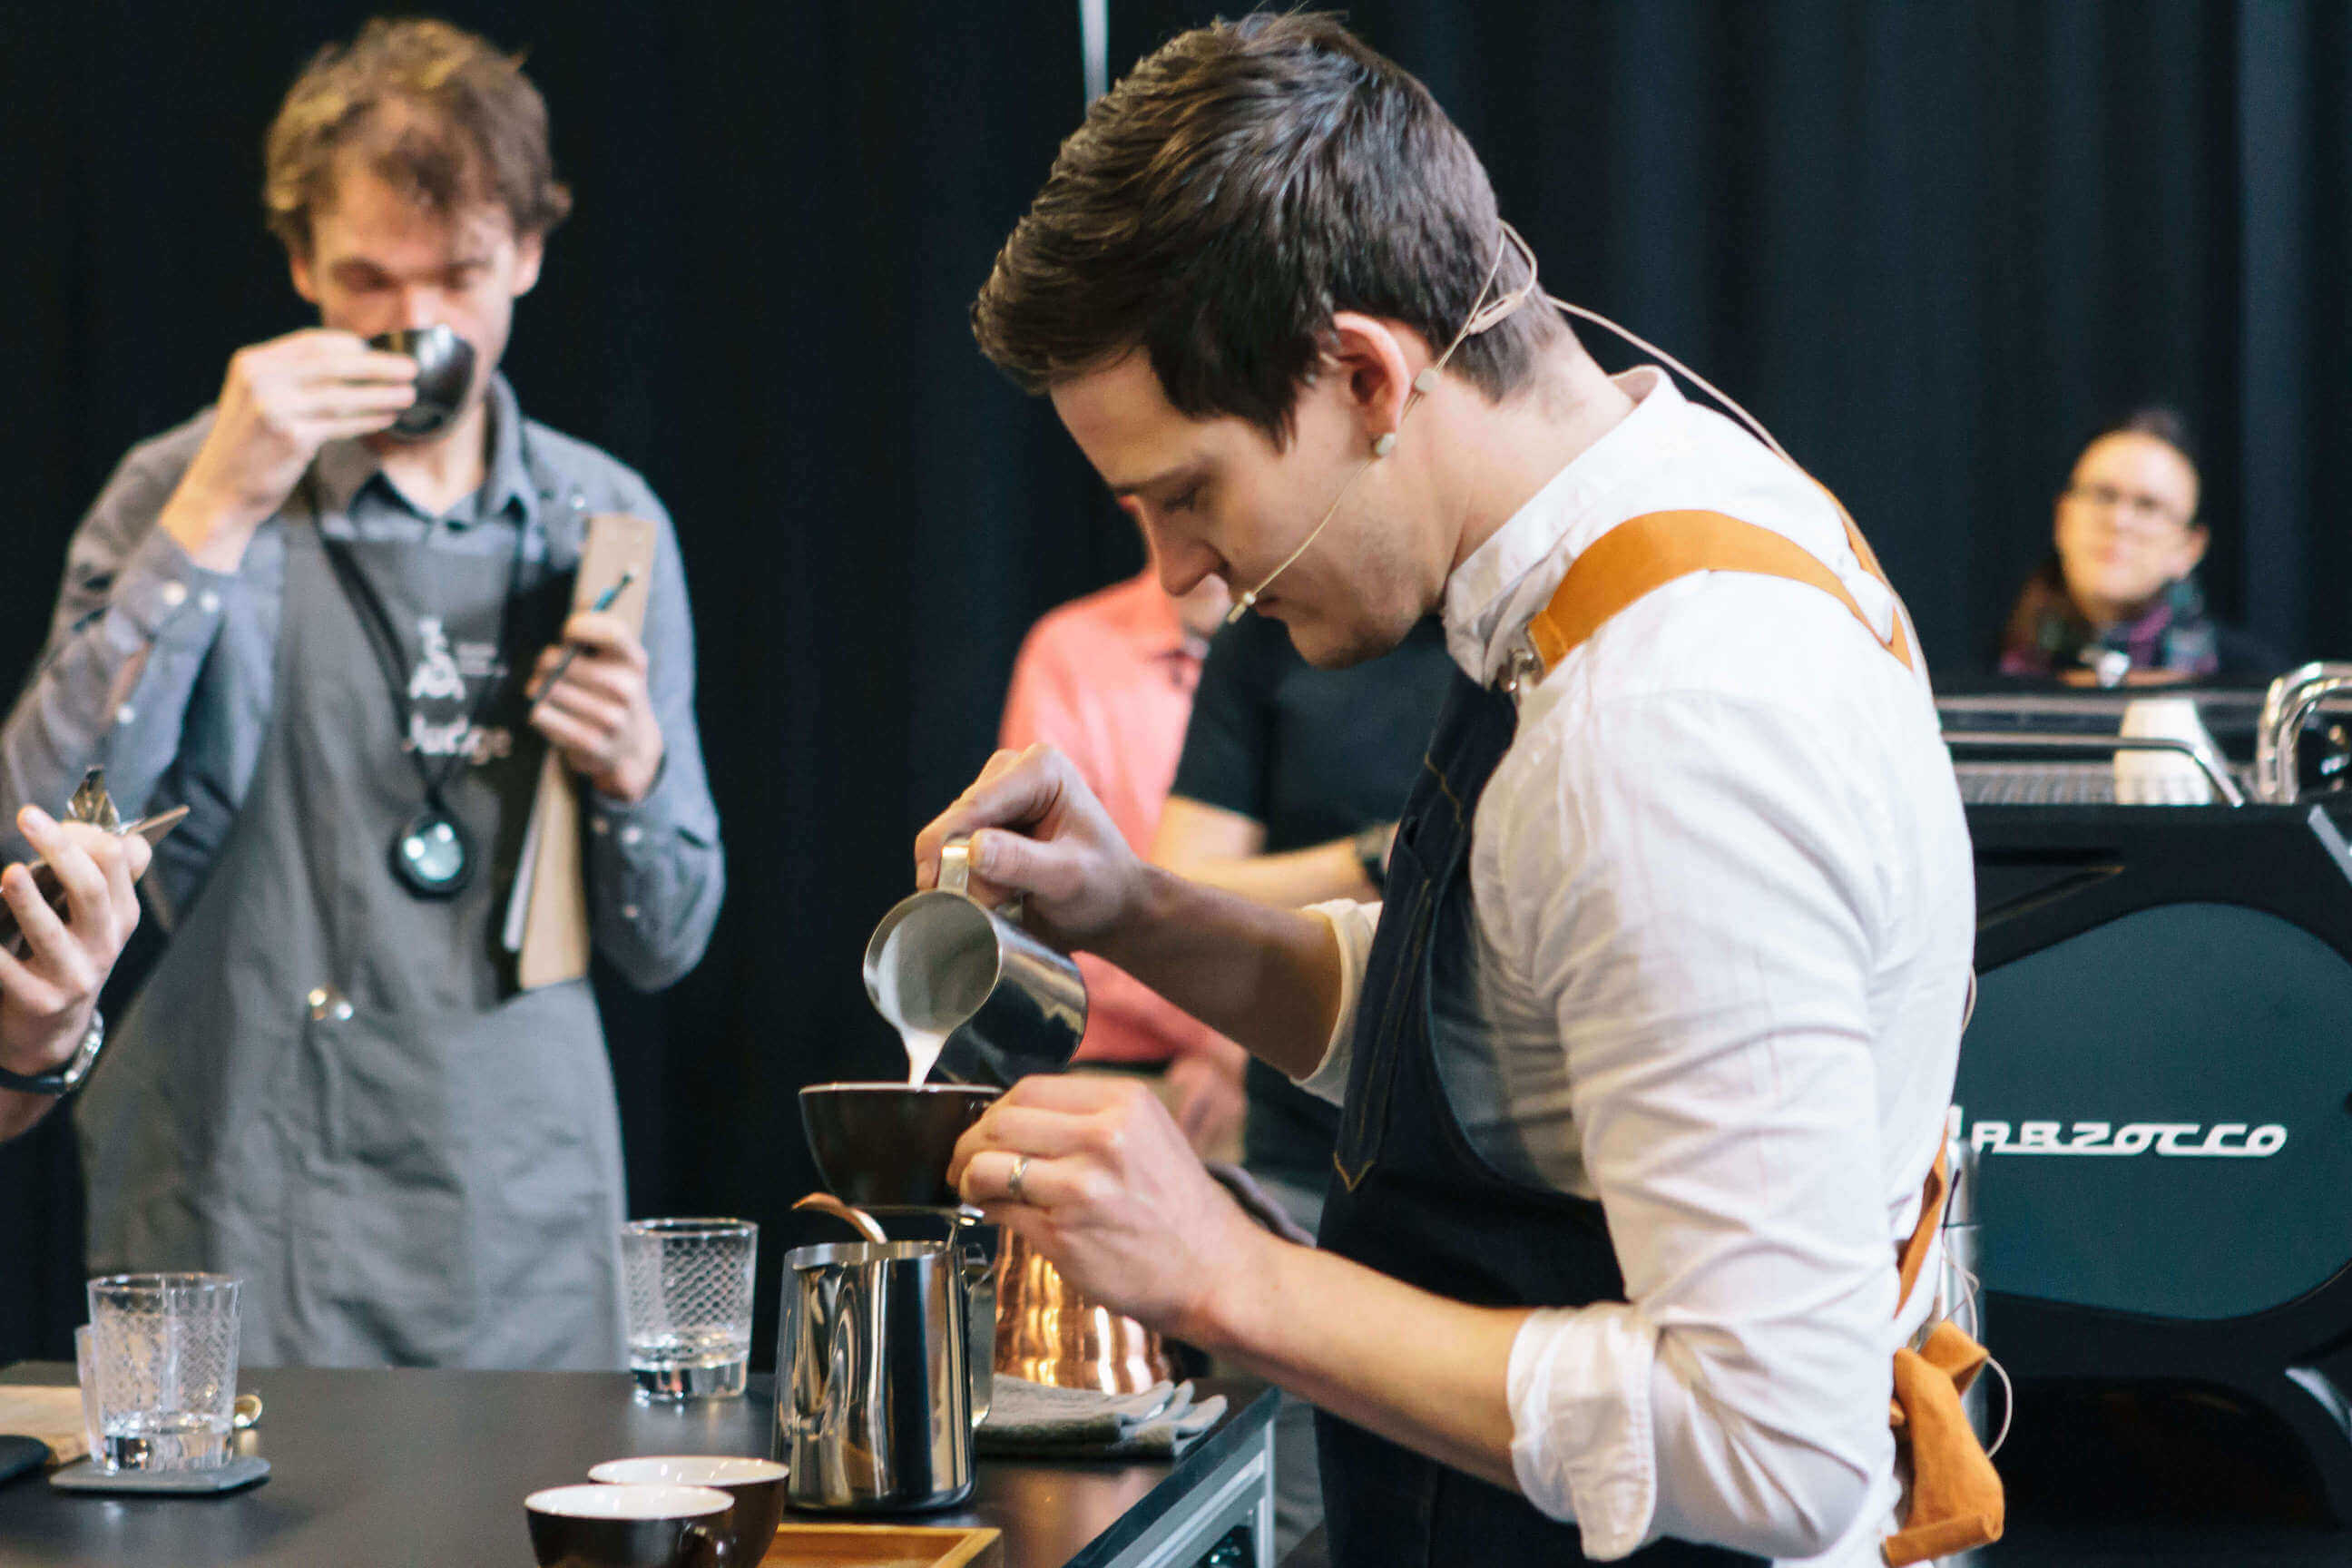 roasters/fire-and-flow/images/Callum%20UKBC%204.jpg